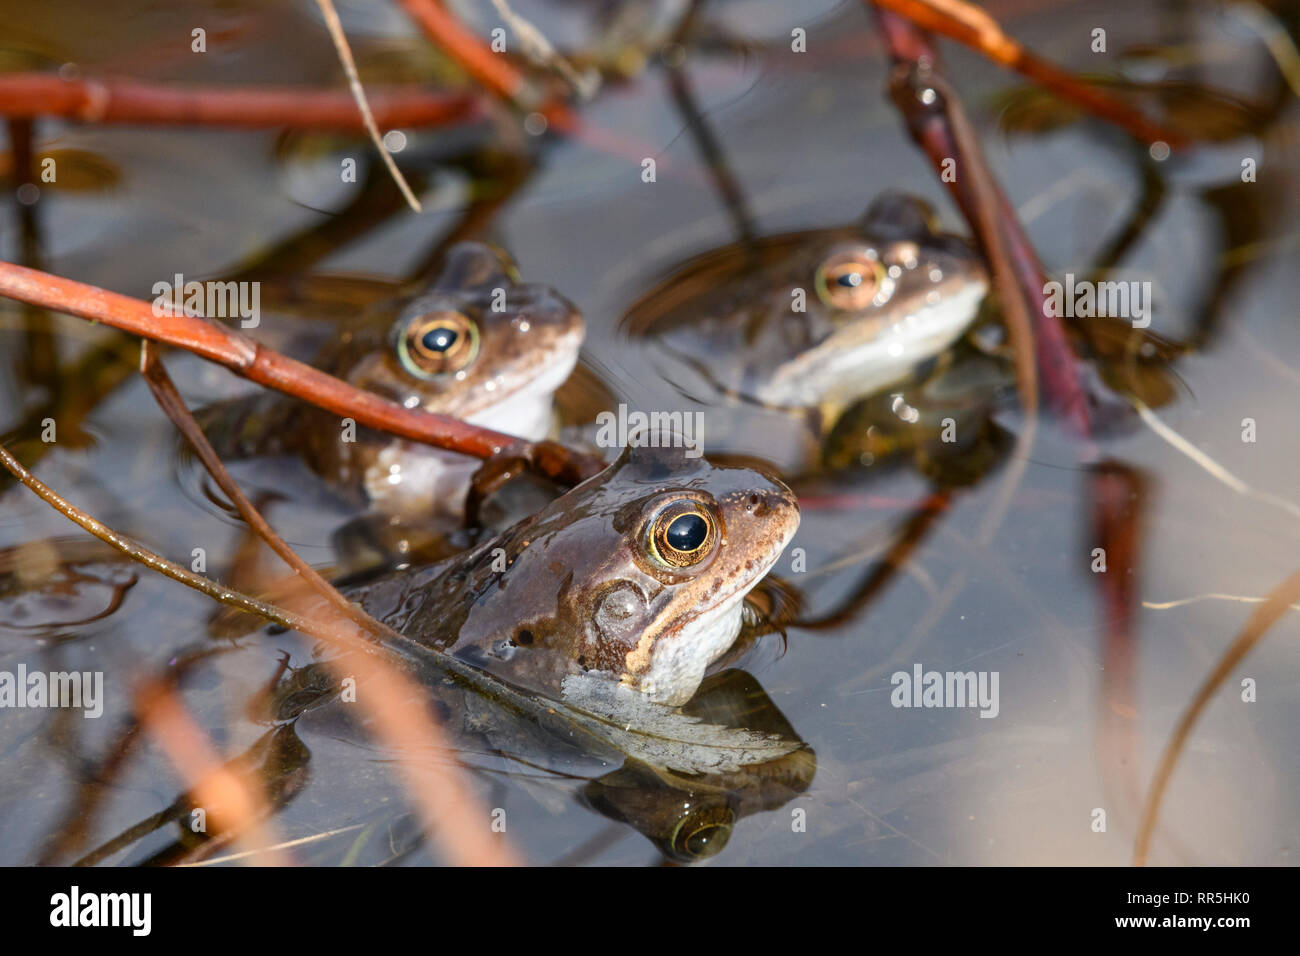 Common Frogs, Rana temporaria, in a pond, Dumfries & Galloway, Scotland - Stock Image